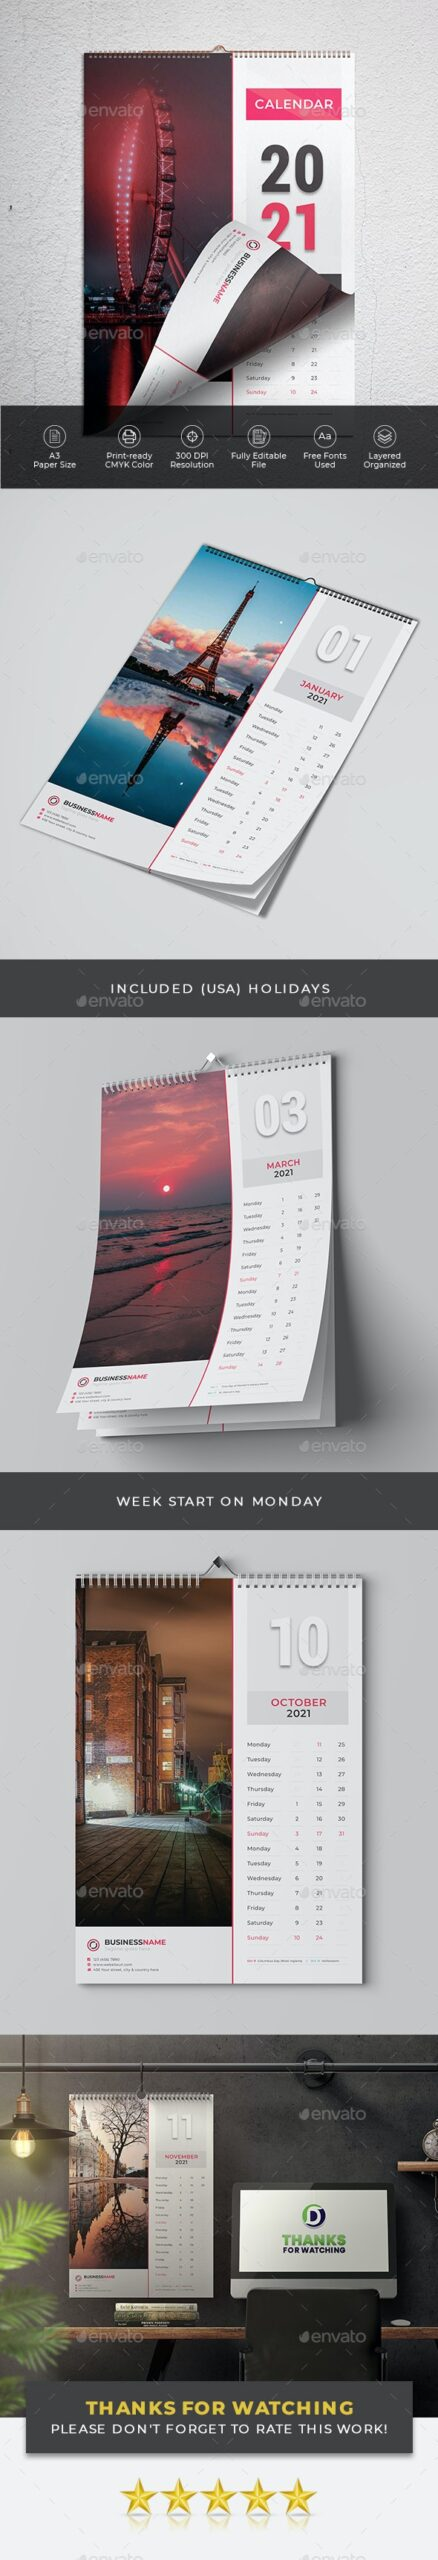 Calendar 2021 - Top 5 Wall Calendar Design Templates 2021